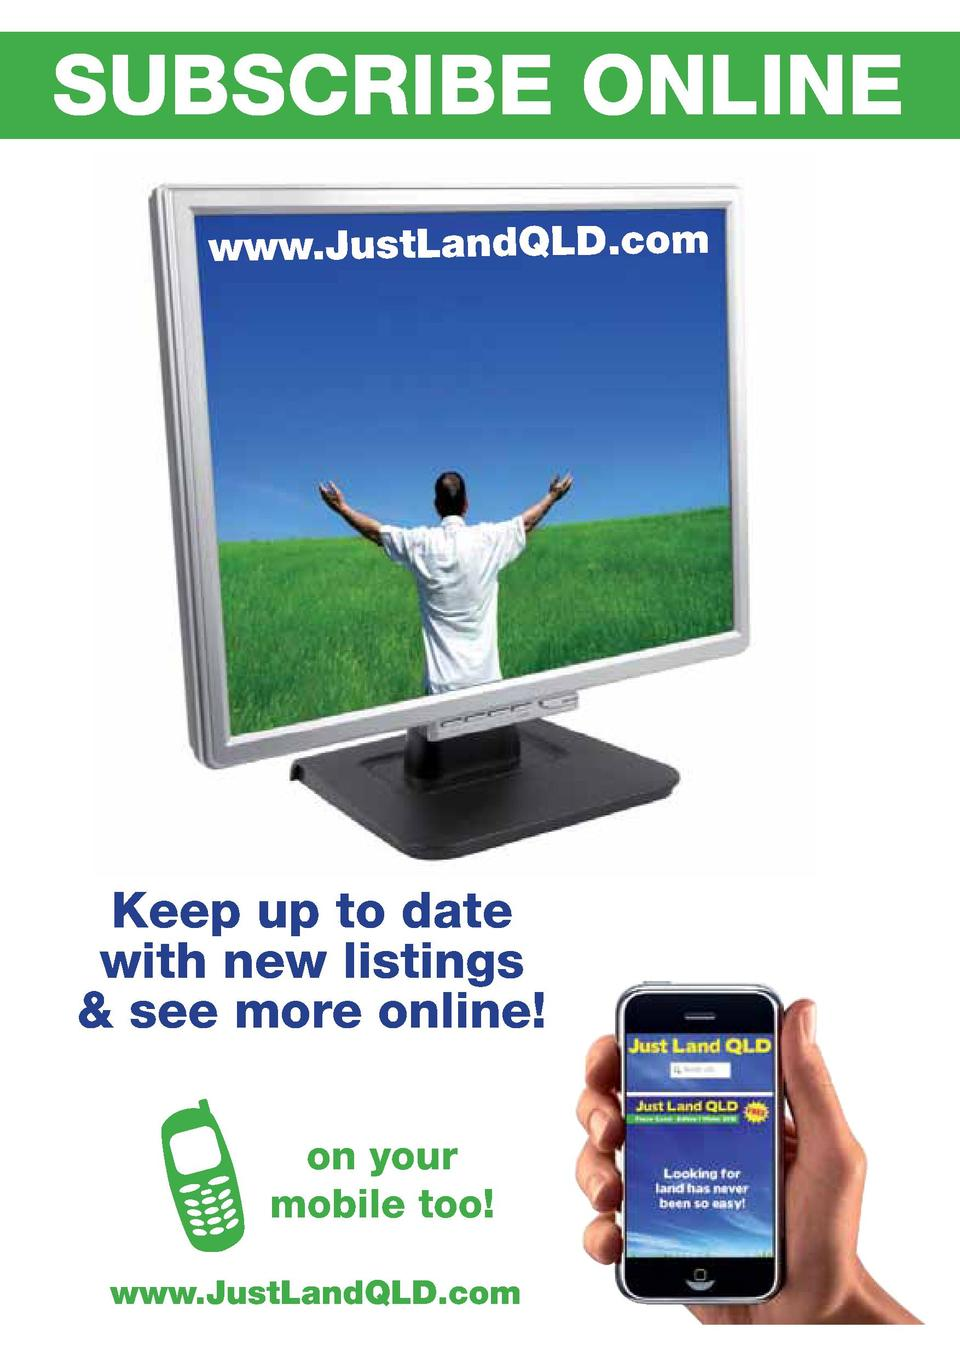 SUBSCRIBE ONLINE www.JustLandQLD.com  Keep up to date with new listings   see more online   5  on your mobile too   www.Ju...